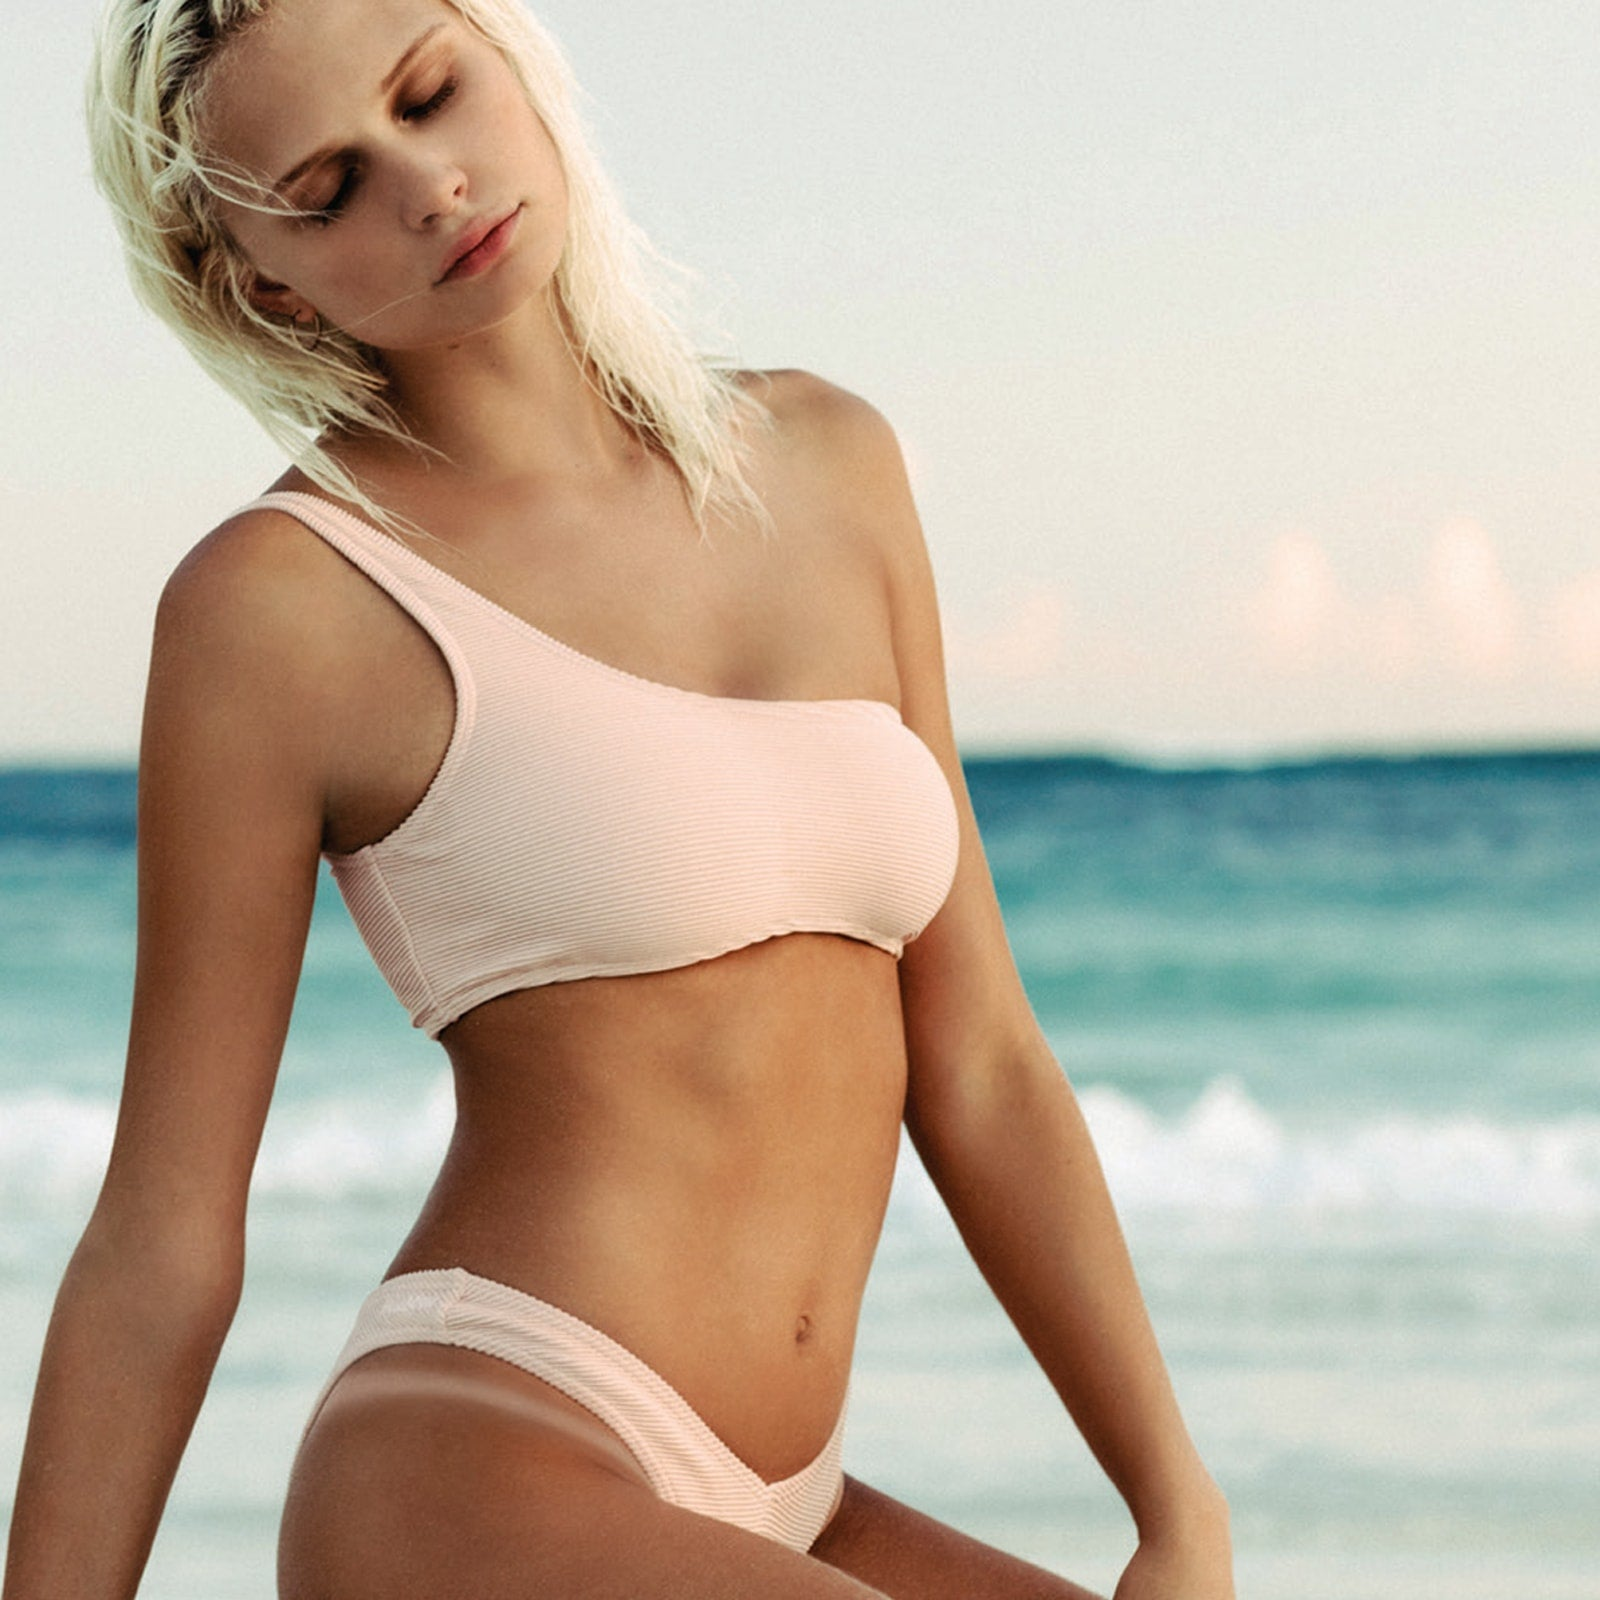 ed06002cf53 Billabong Tanlines One Shoulder/Hike. Tanlines One Shoulder. Tanlines Hike.  Billabong Spring 2018 Swimwear Collection ...